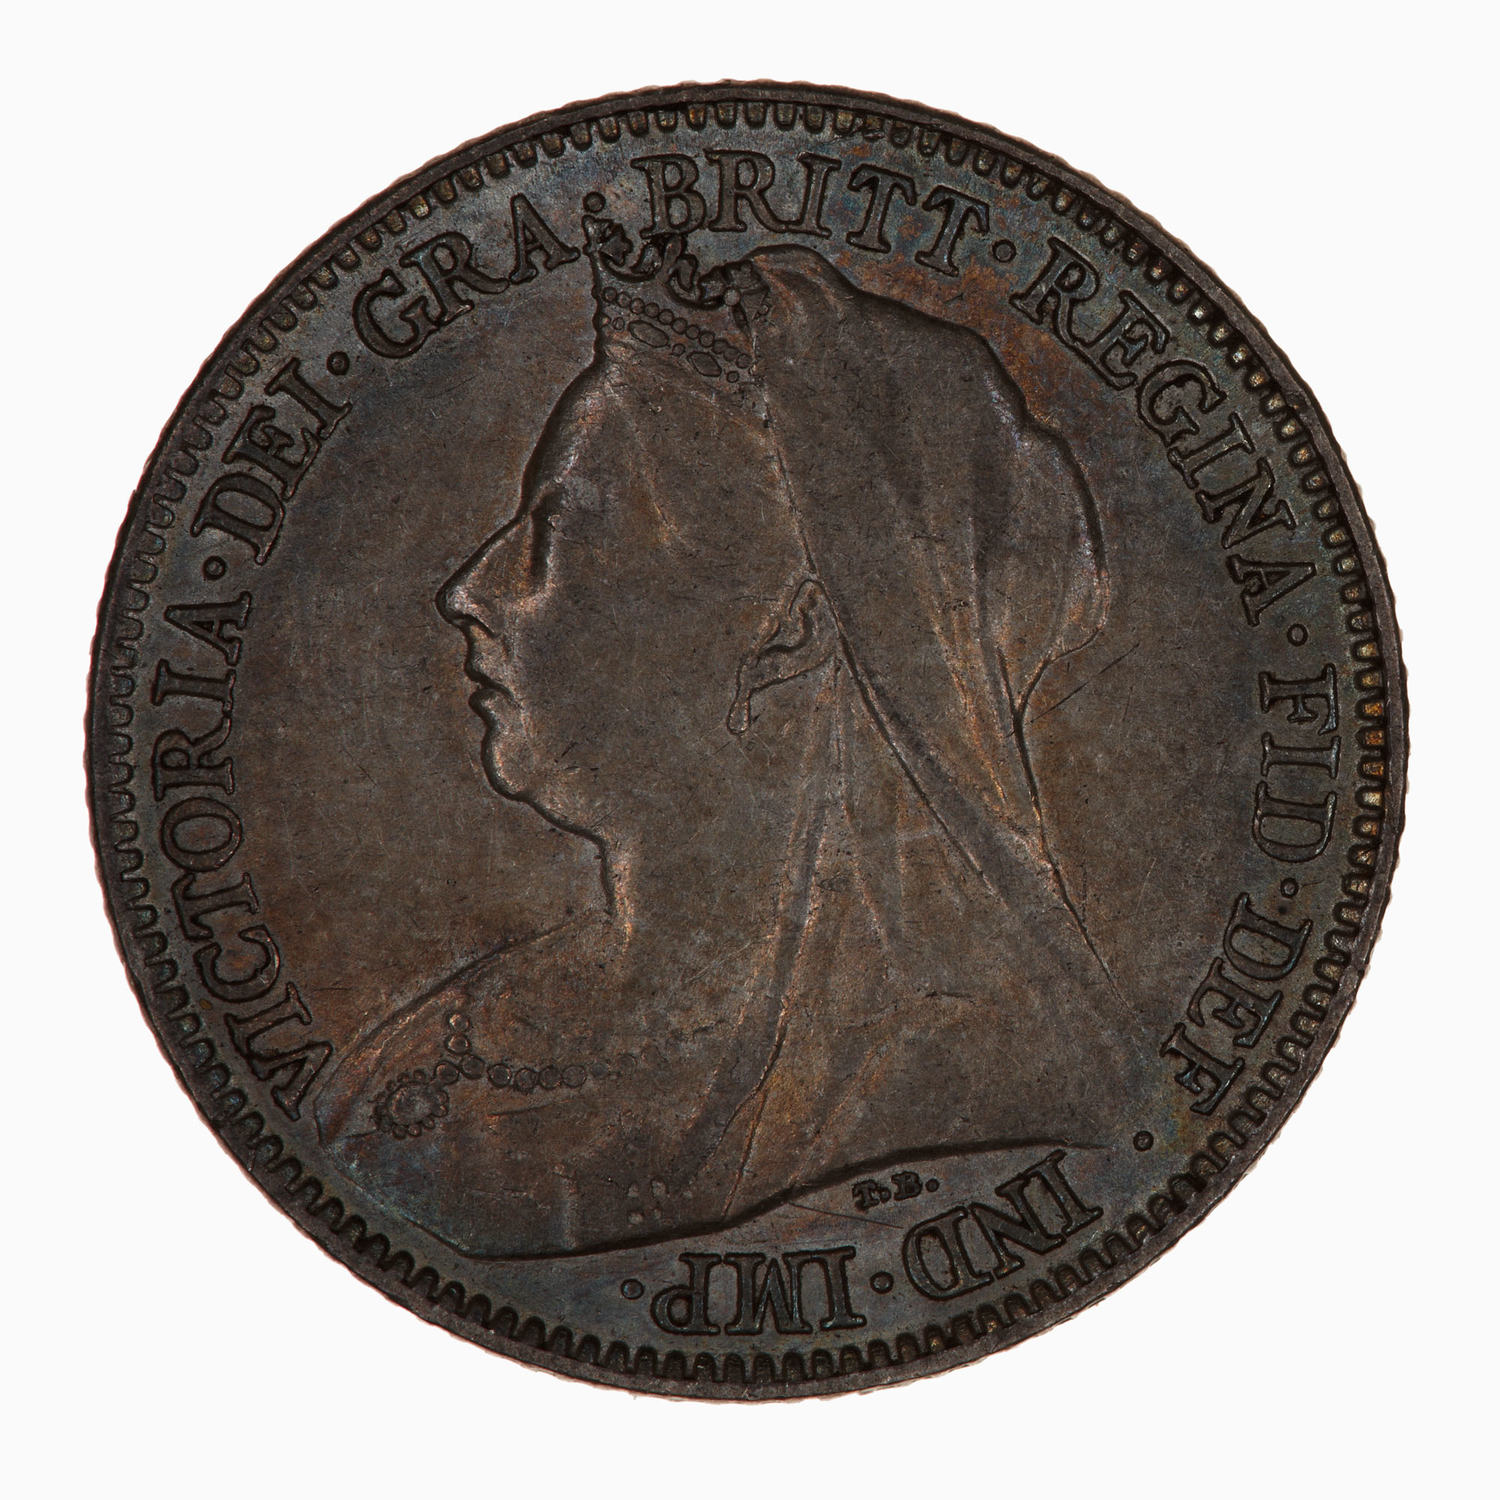 Sixpence Wreath (Second Design): Photo Coin - Sixpence, Queen Victoria, Great Britain, 1900